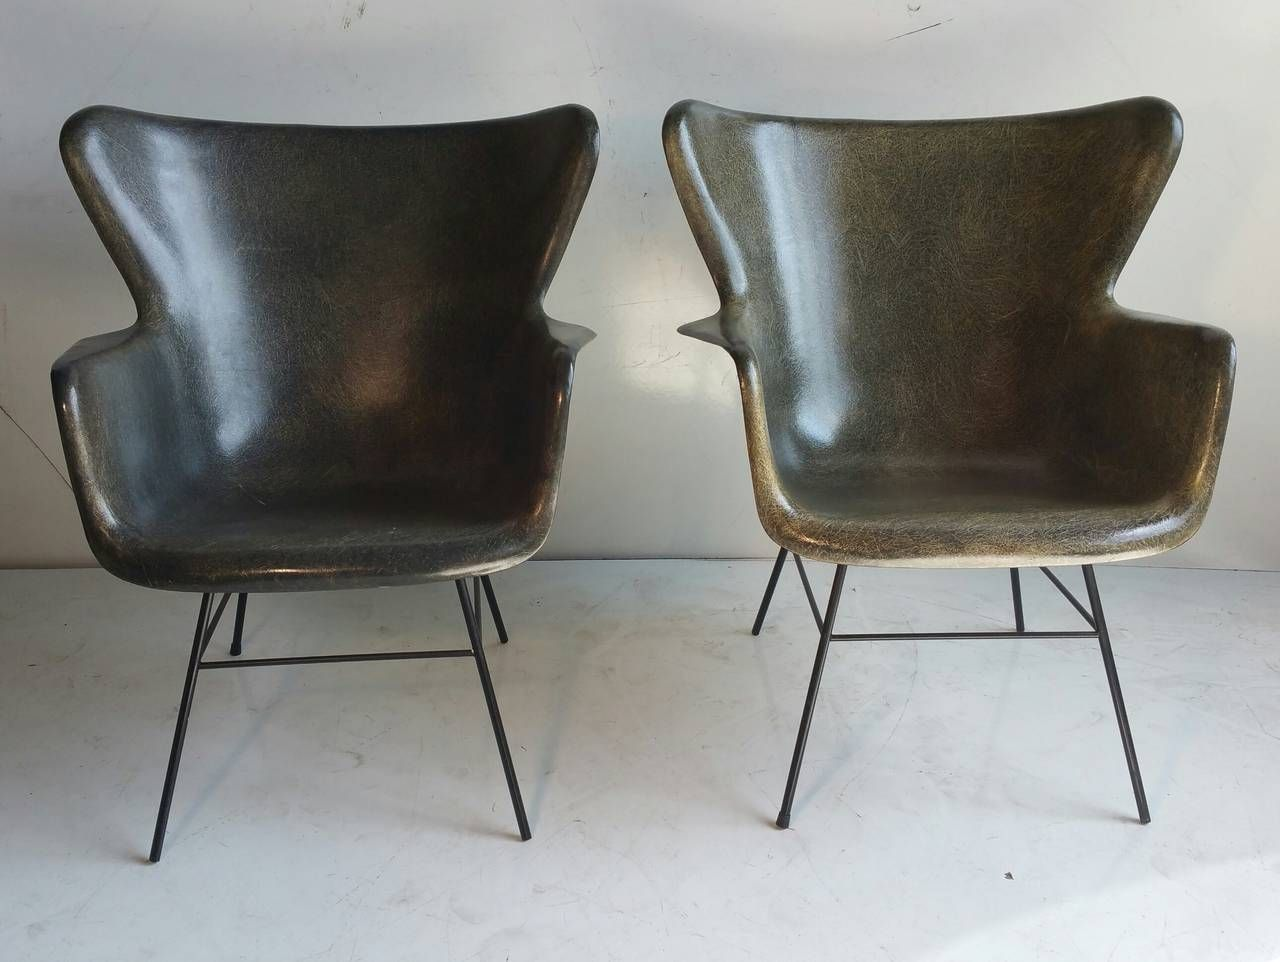 For Sale On   Pair Of Fiberglass And Wire Iron Lounge Chairs, Designed By  George Peabody For Selig, Classic Mid Century Modern, Beautiful Dark Green  Color, ...